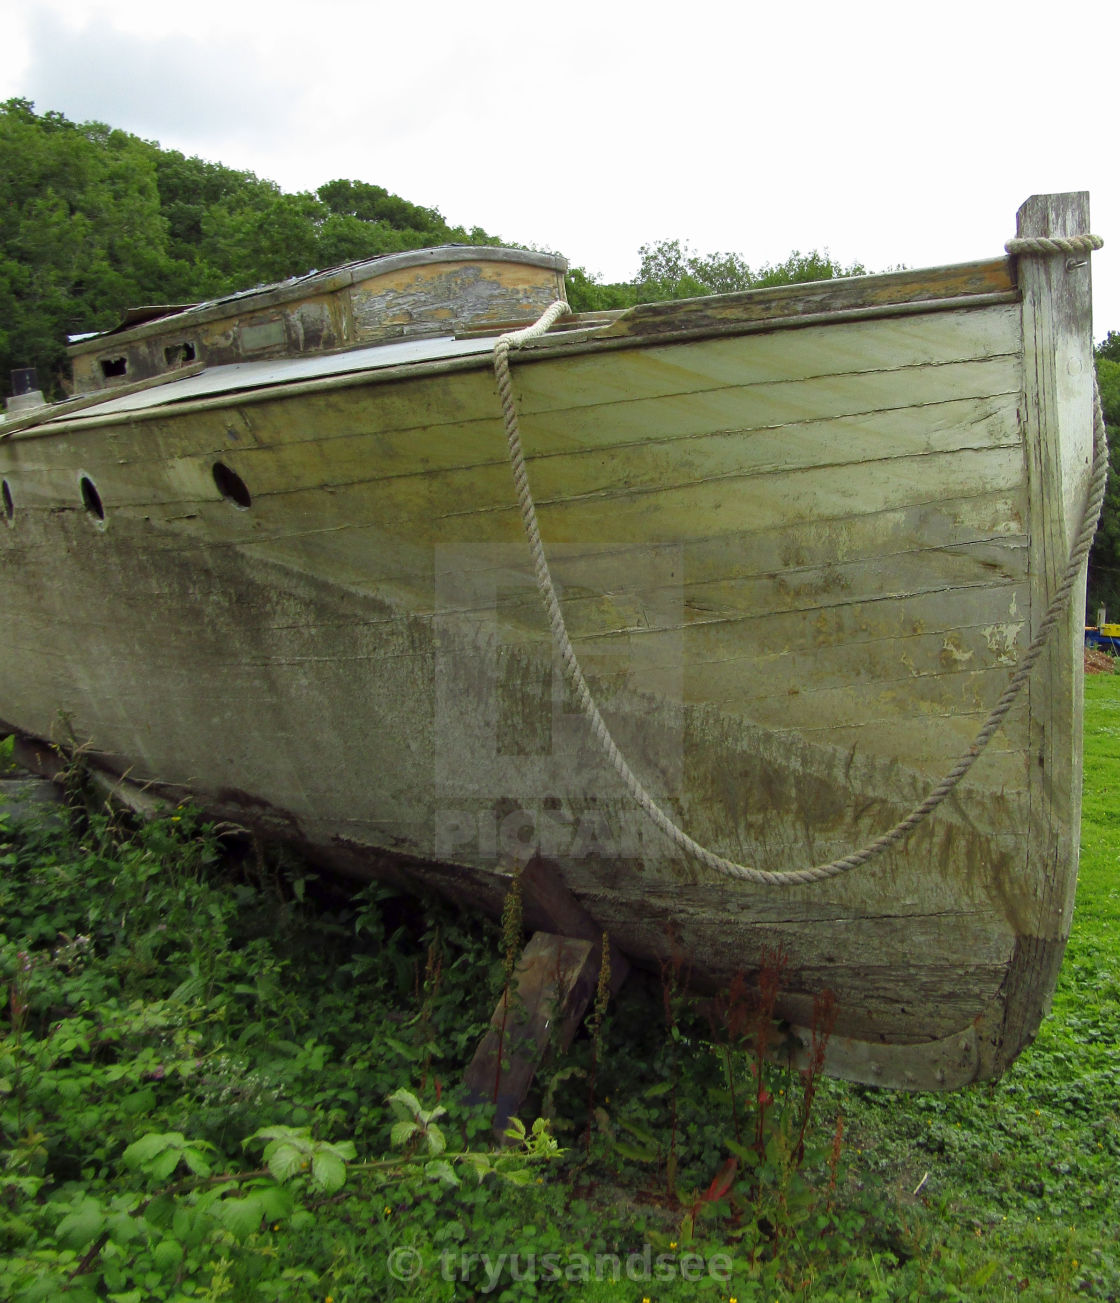 """Derelict wooden boat in field"" stock image"